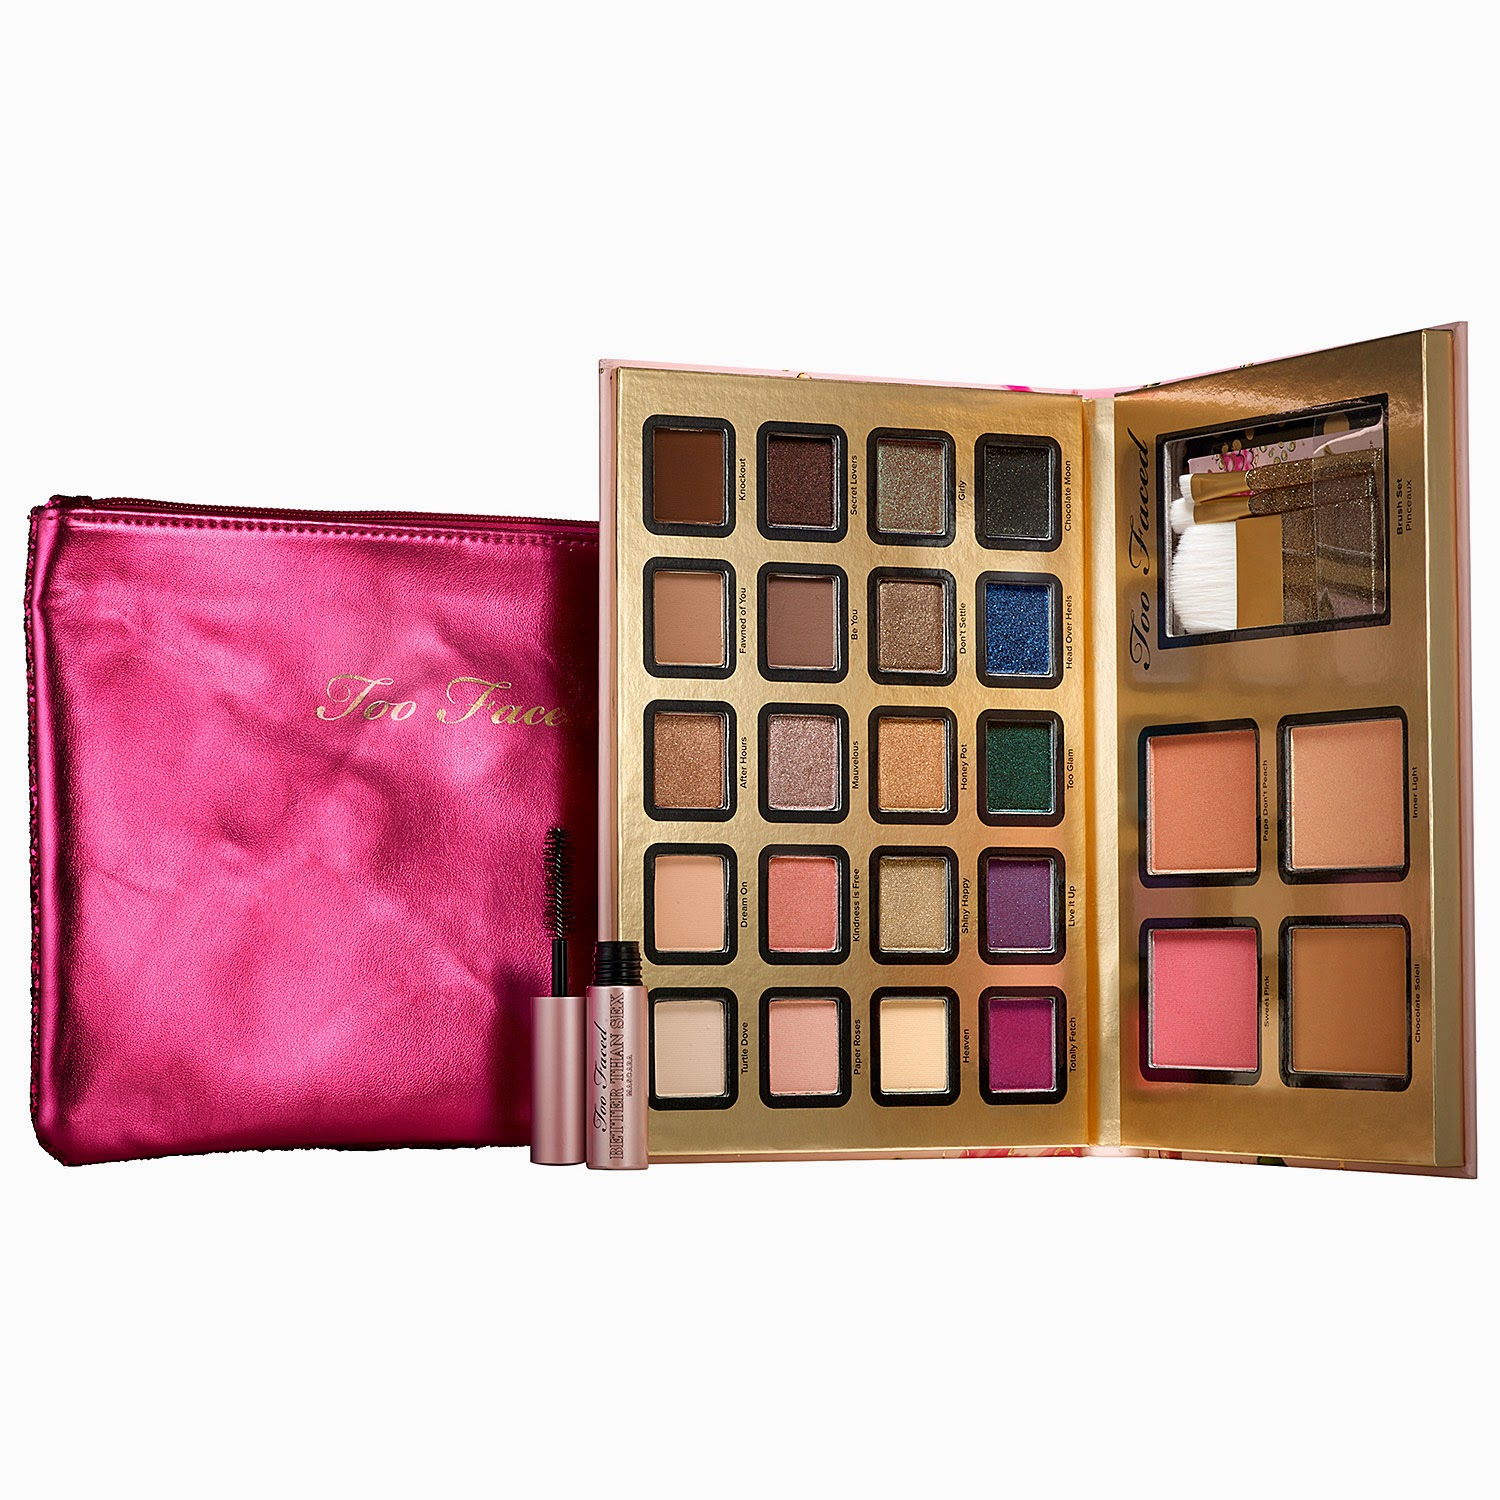 holiday 2014, 2014 holiday, too faced, holiday makeup, mascara, eyeshadow, eyeshadow palette, sephora, affiliate